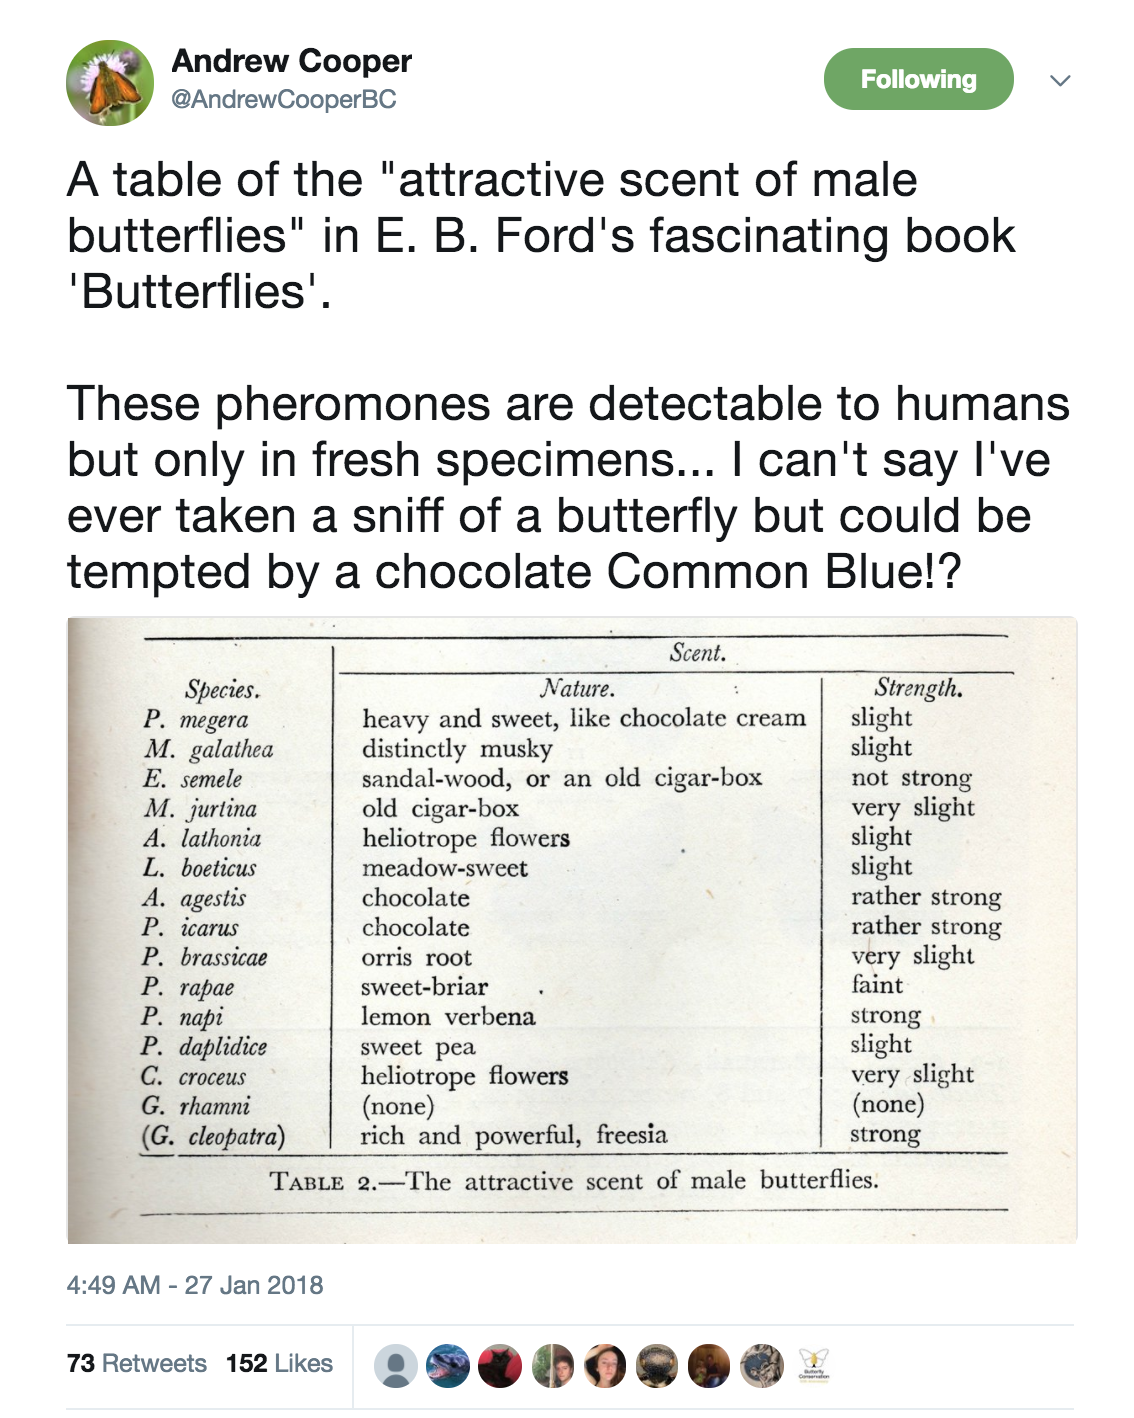 Screenshot of tweet by Andrew Cooper on butterfly smells